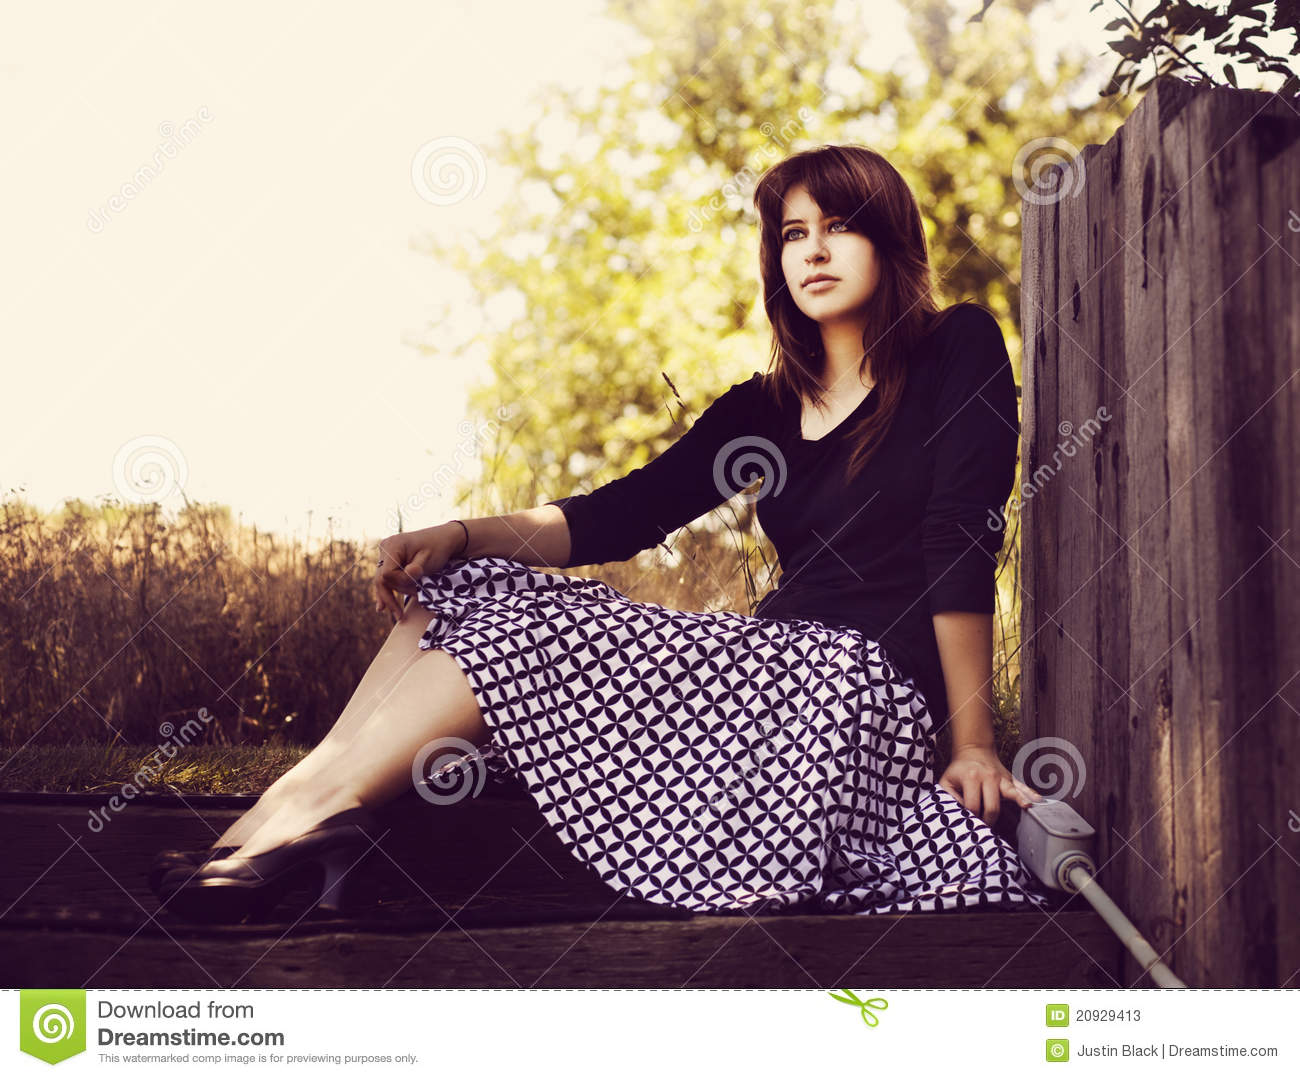 Young Girl with Retro Skirt